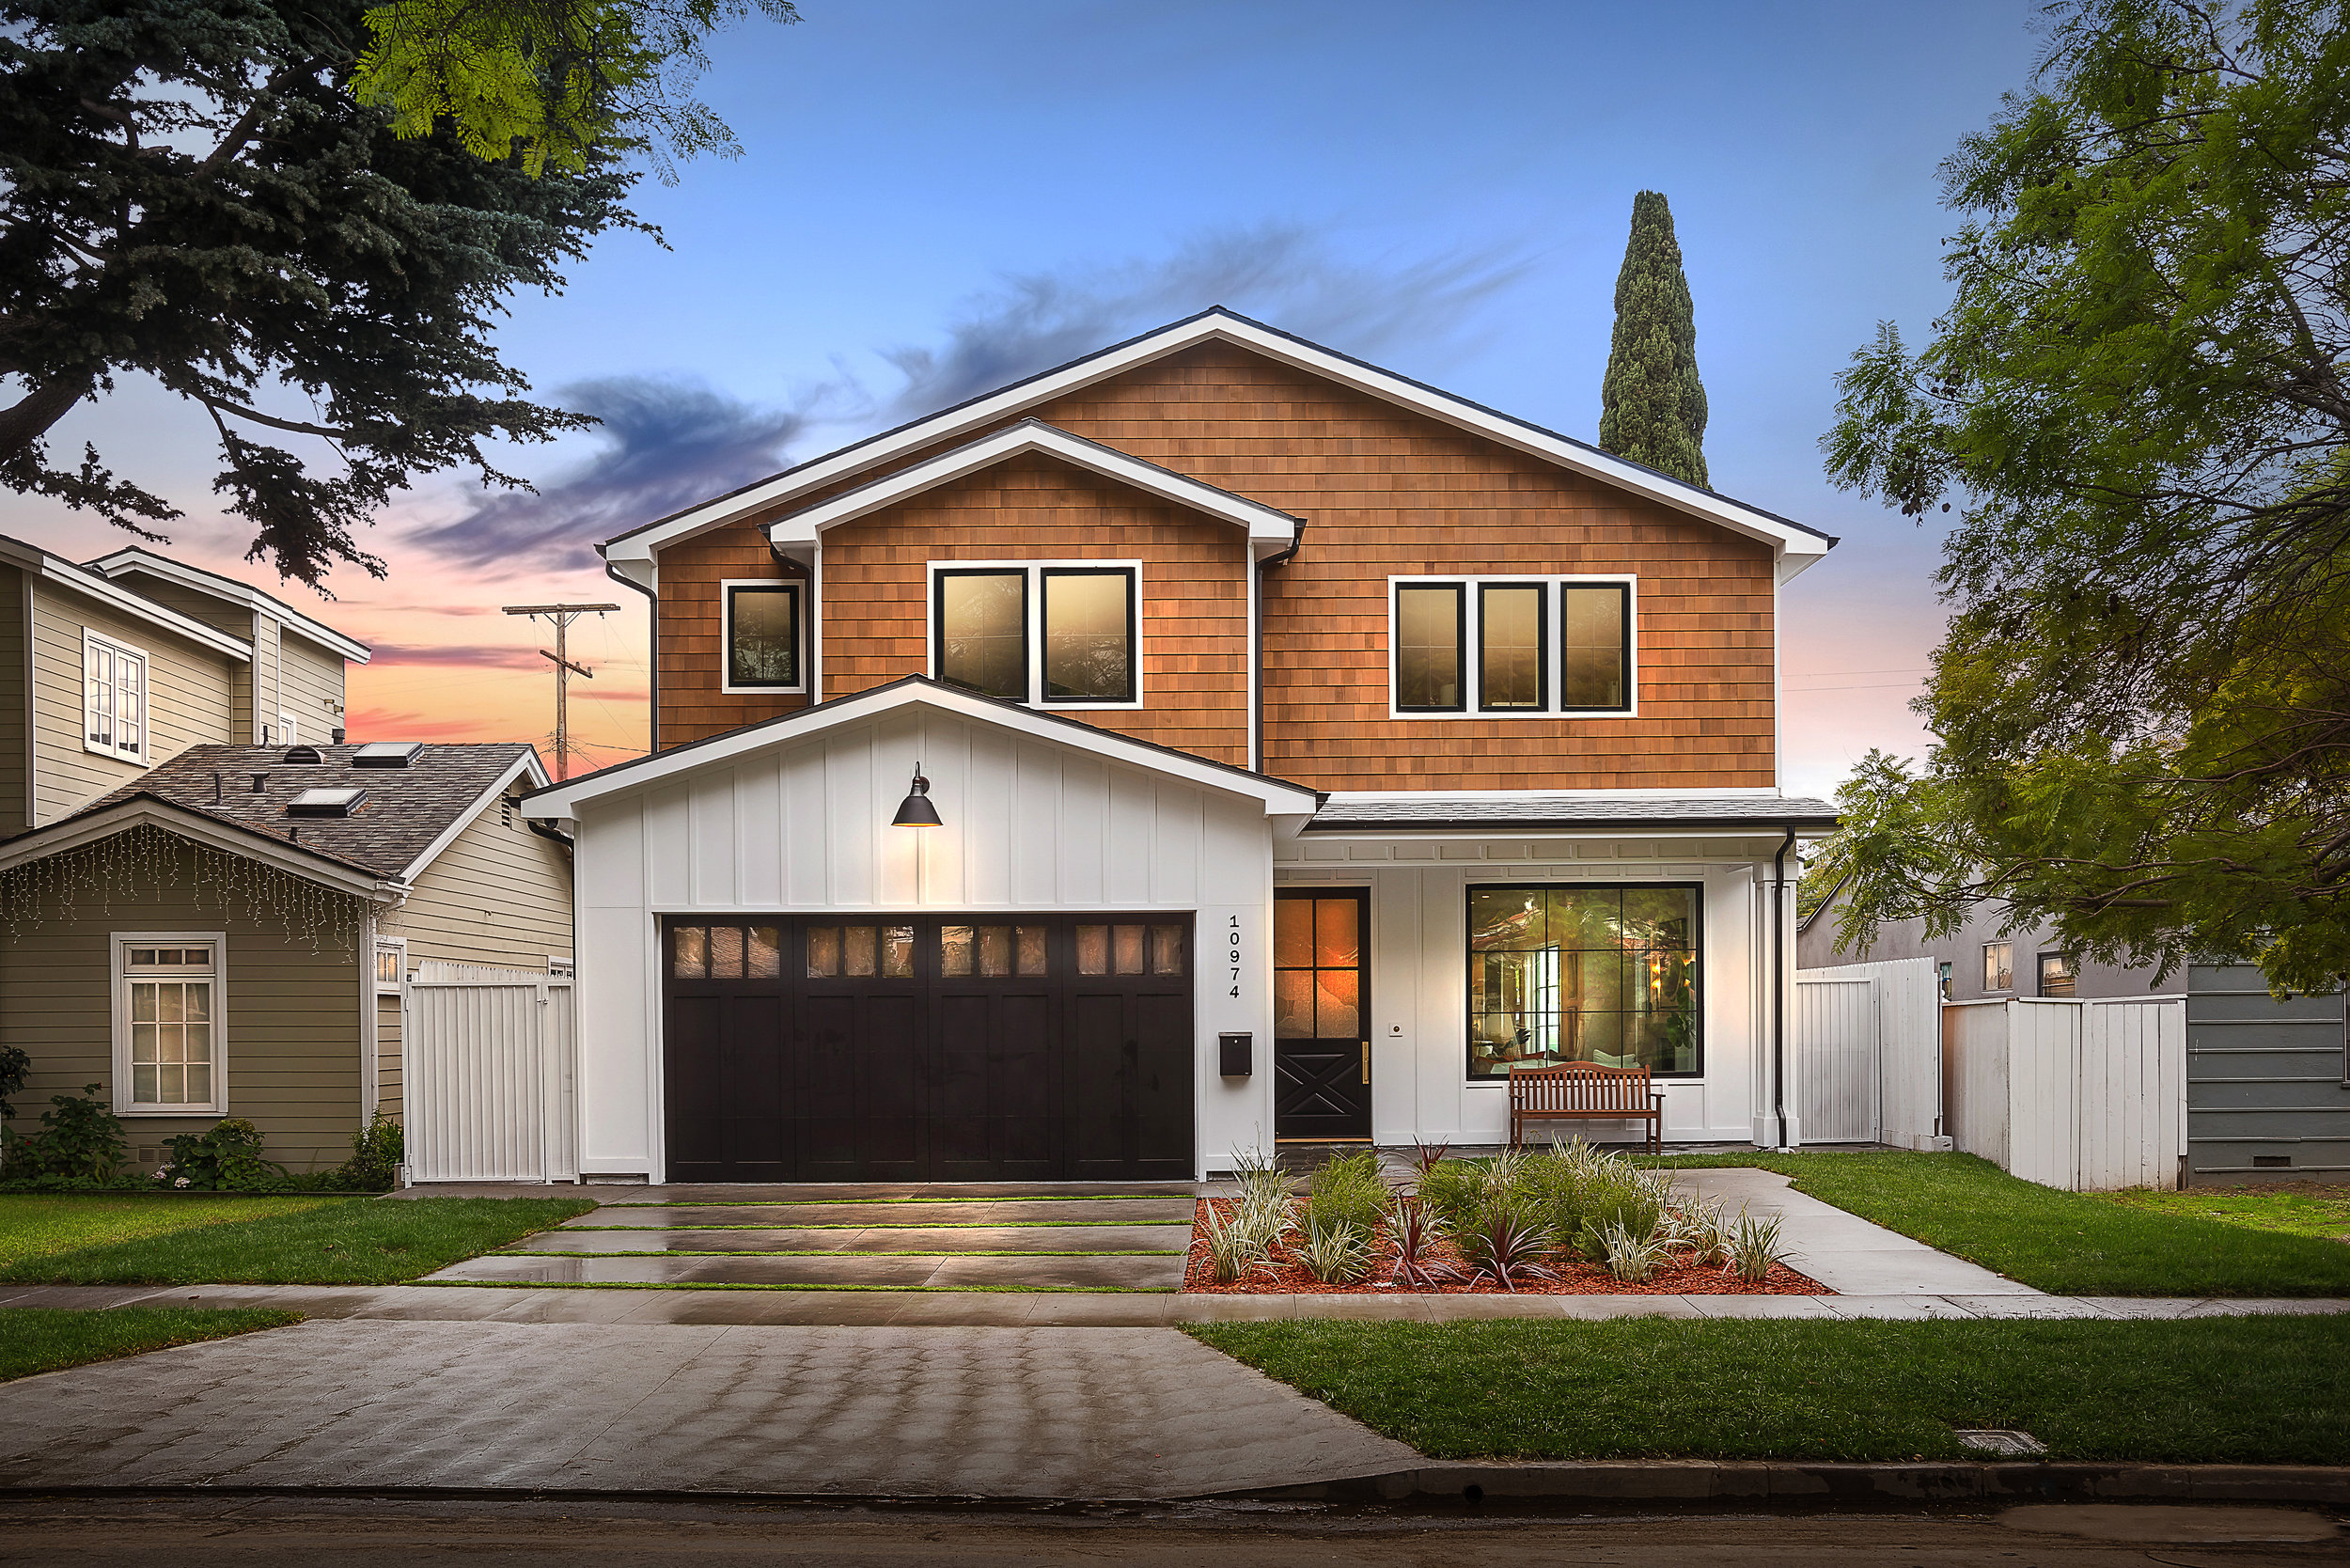 AYERS | CHEVIOT HILLS   Newly constructed & custom designed 5BR/6BA Cape Cod located in the heart of Rancho Park. High-end finishes, Control4 Smart home automation & stunning amenities. The formal living room w/ fireplace showcases indoor-outdoor living with light & airy open floor plan.